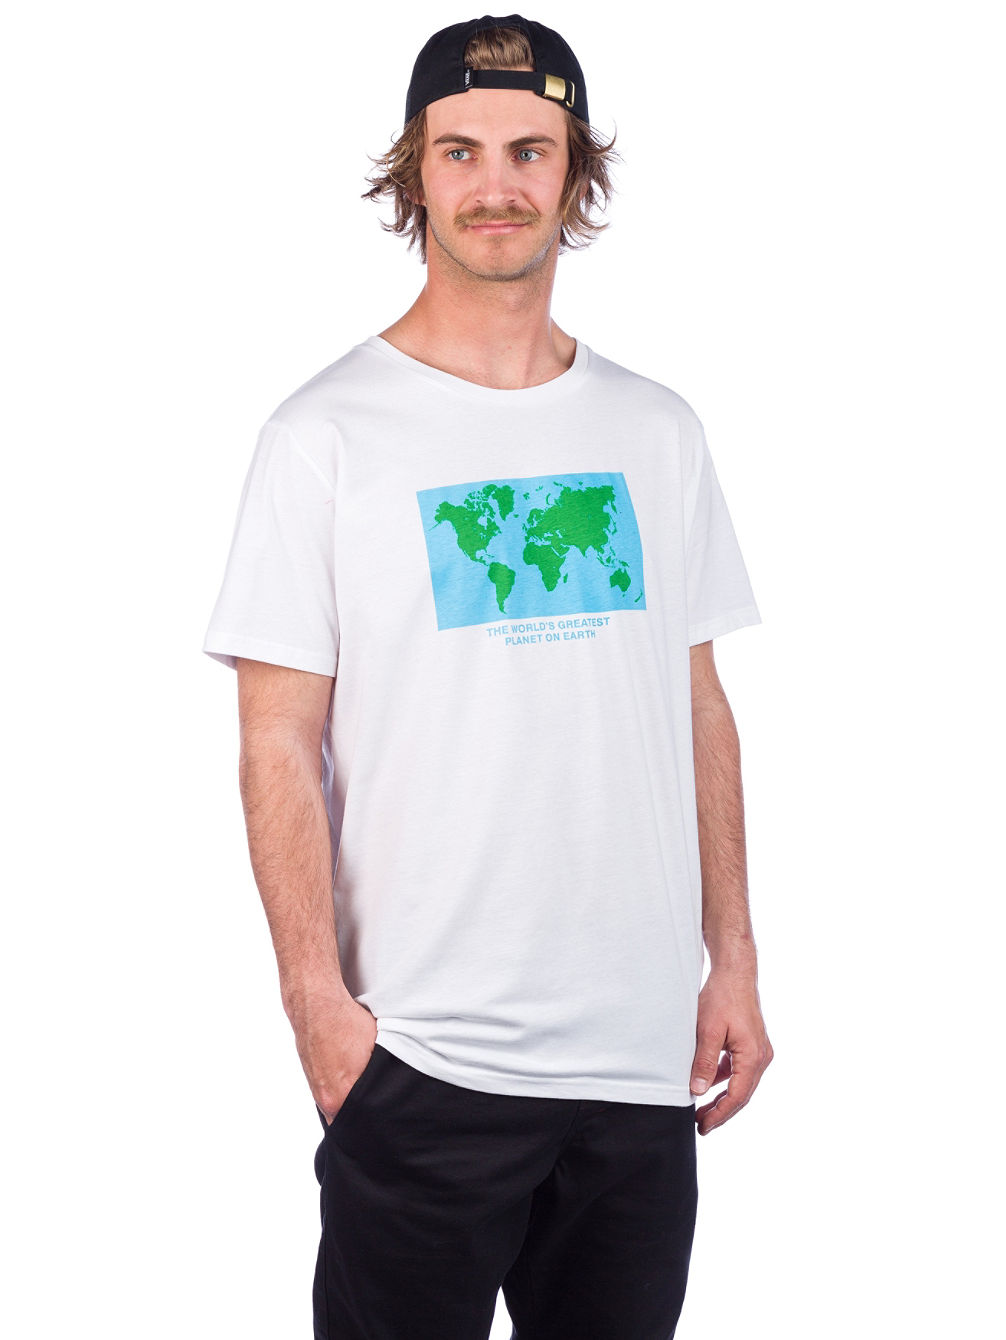 Stockholm Greatest Planet T-shirt